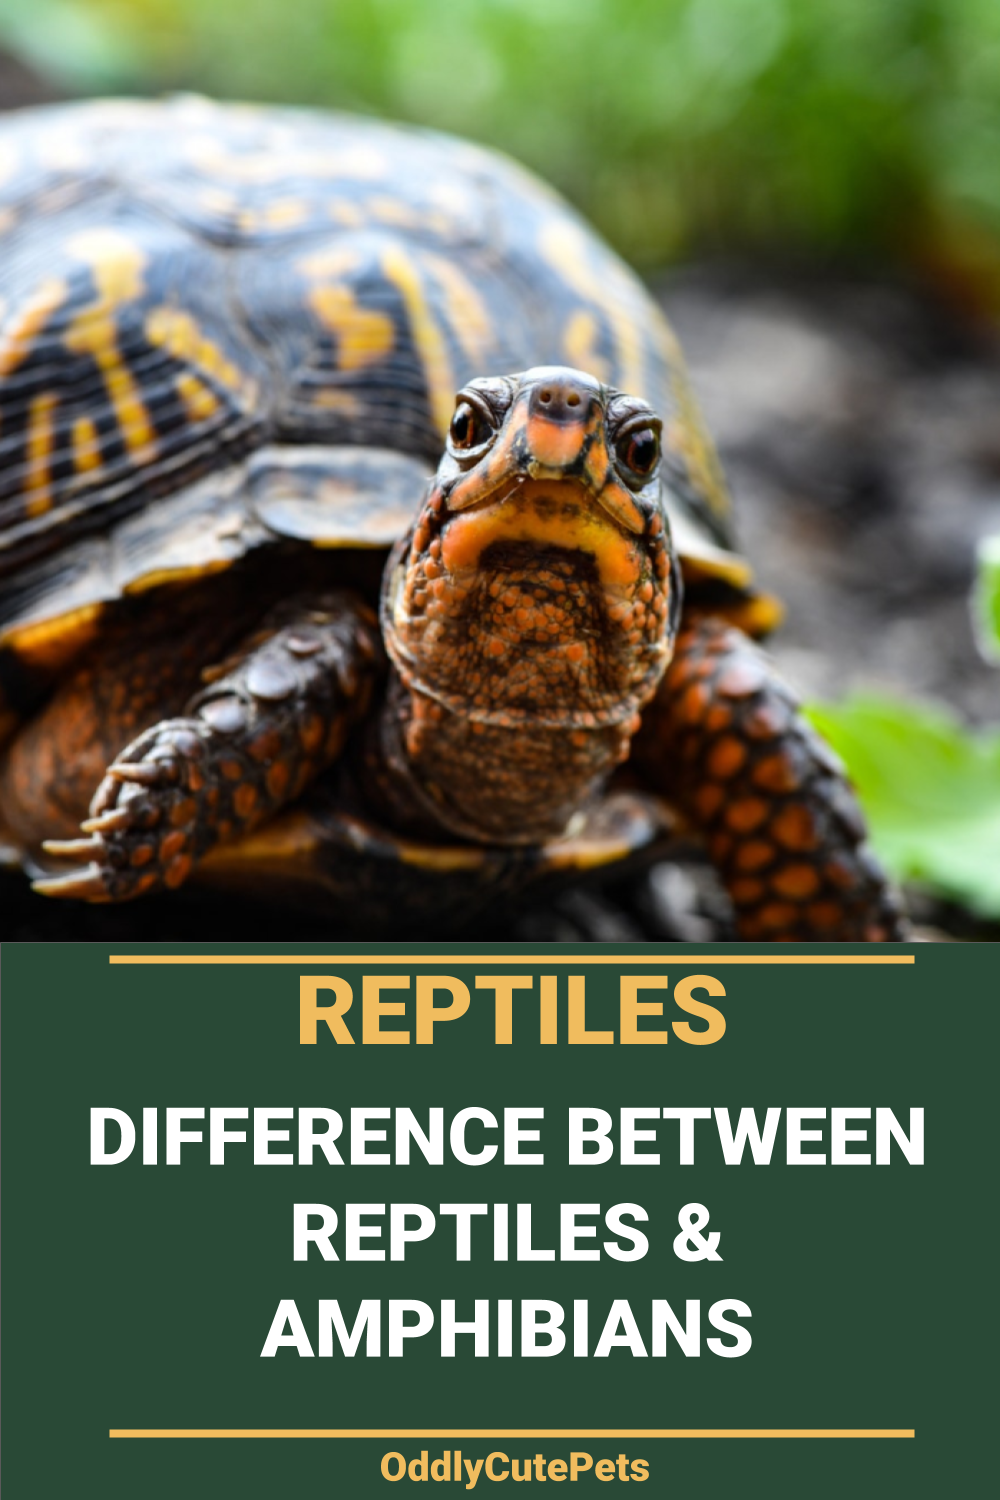 What's The Difference Between Reptiles and Amphibians in